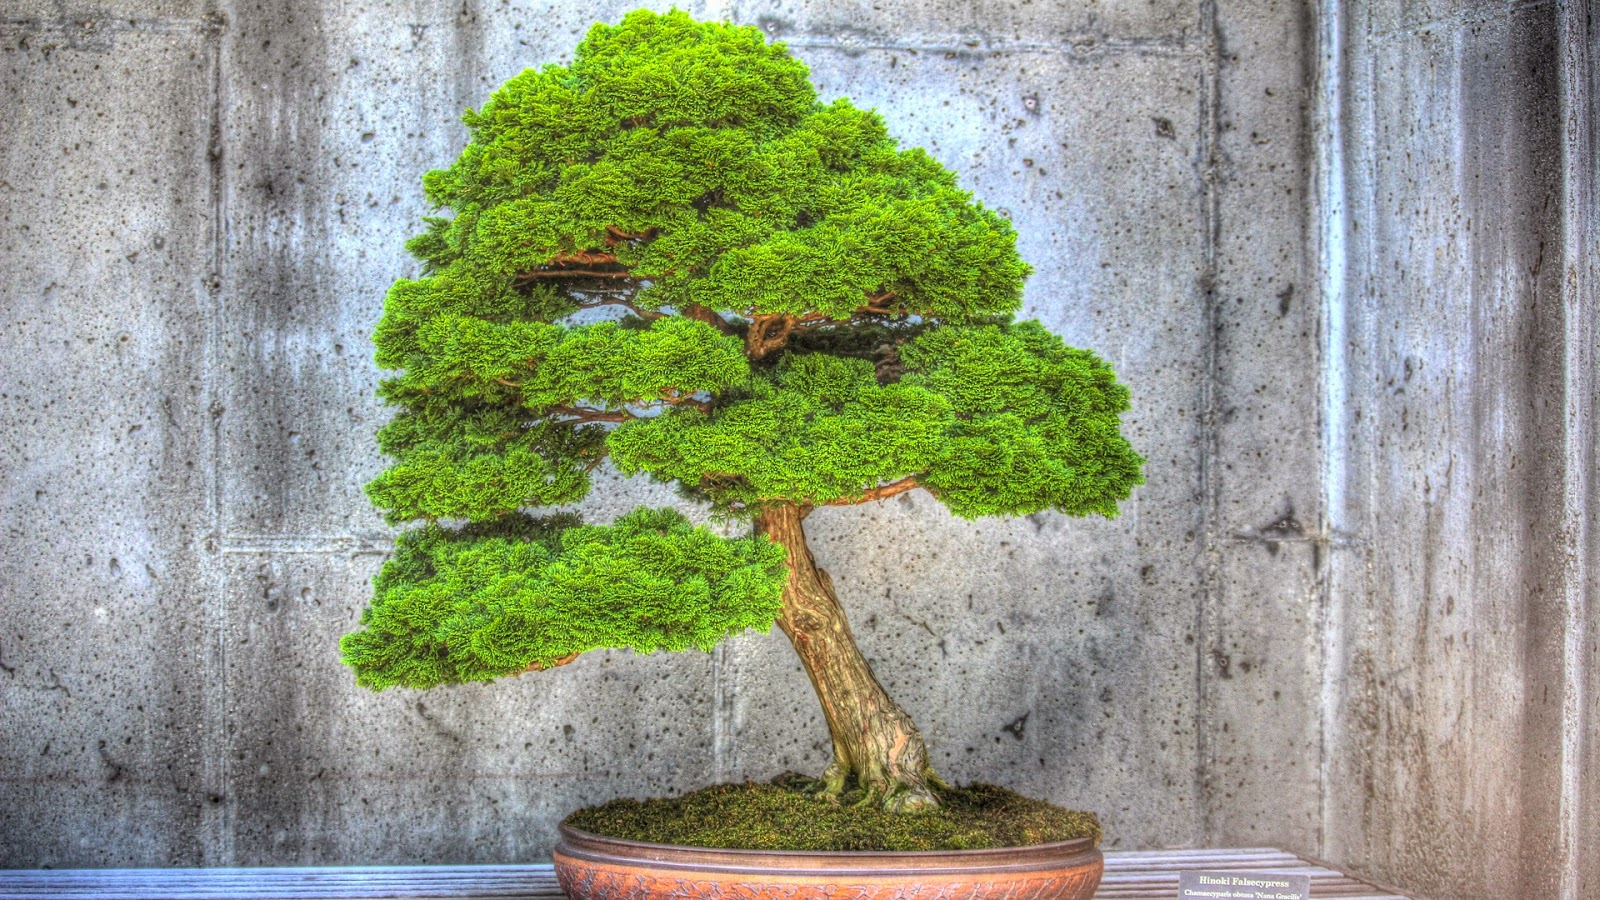 Backyard Bonsai Trees : Backyard Birdingand Nature Bonsai Tree Garden Meditation North